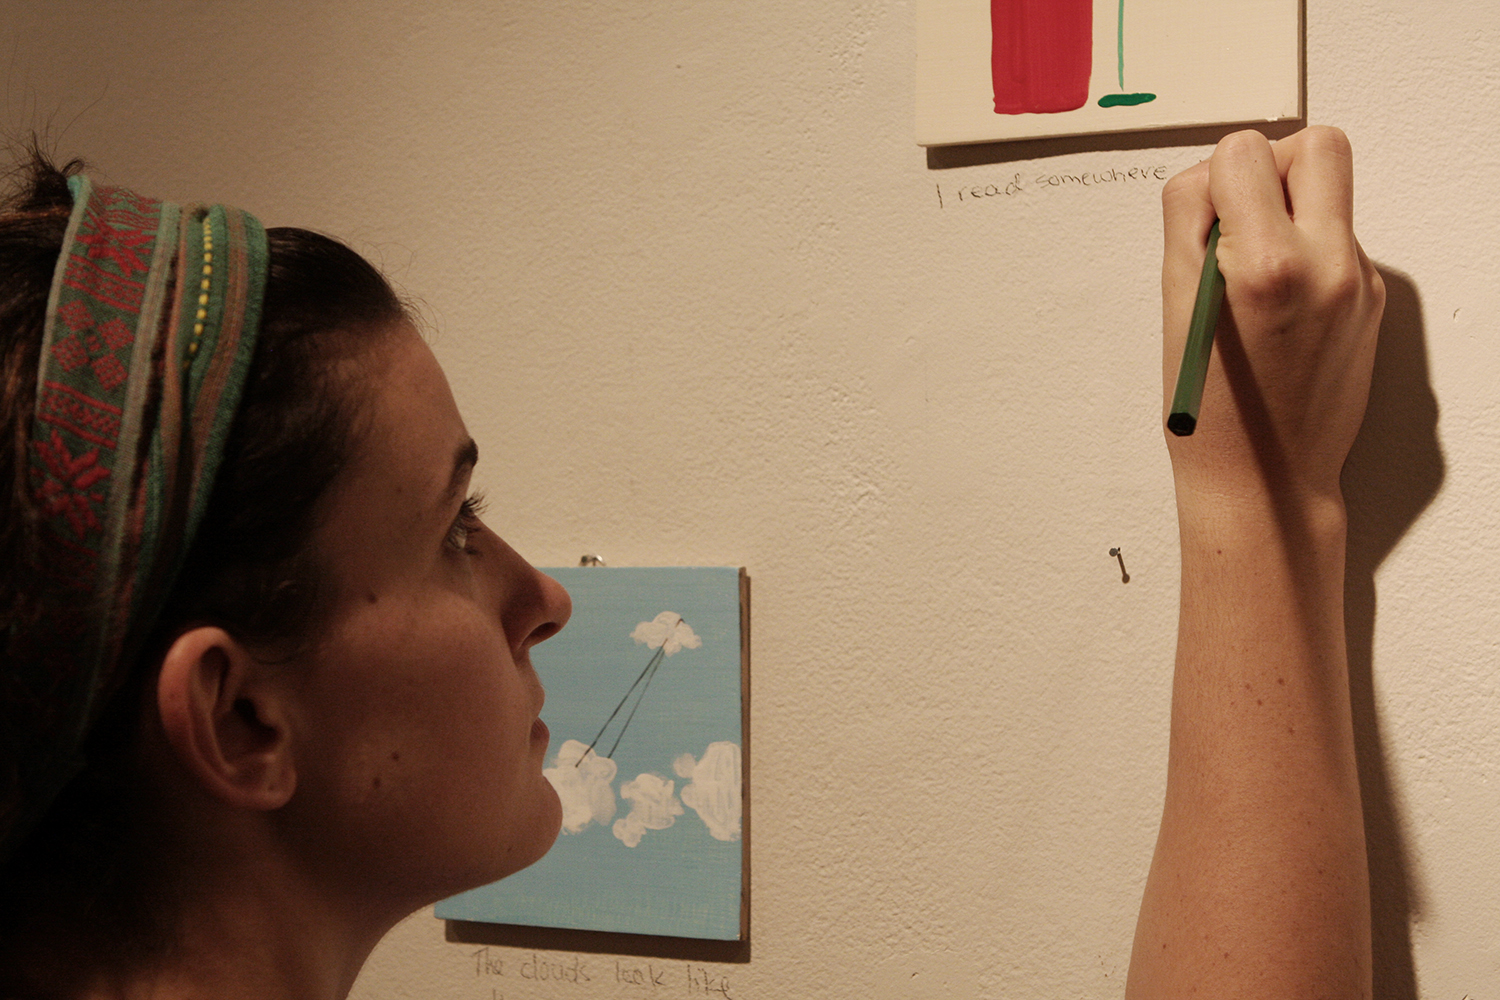 Today speak only in pictures , 2013, participant writing her submitted words under her painting